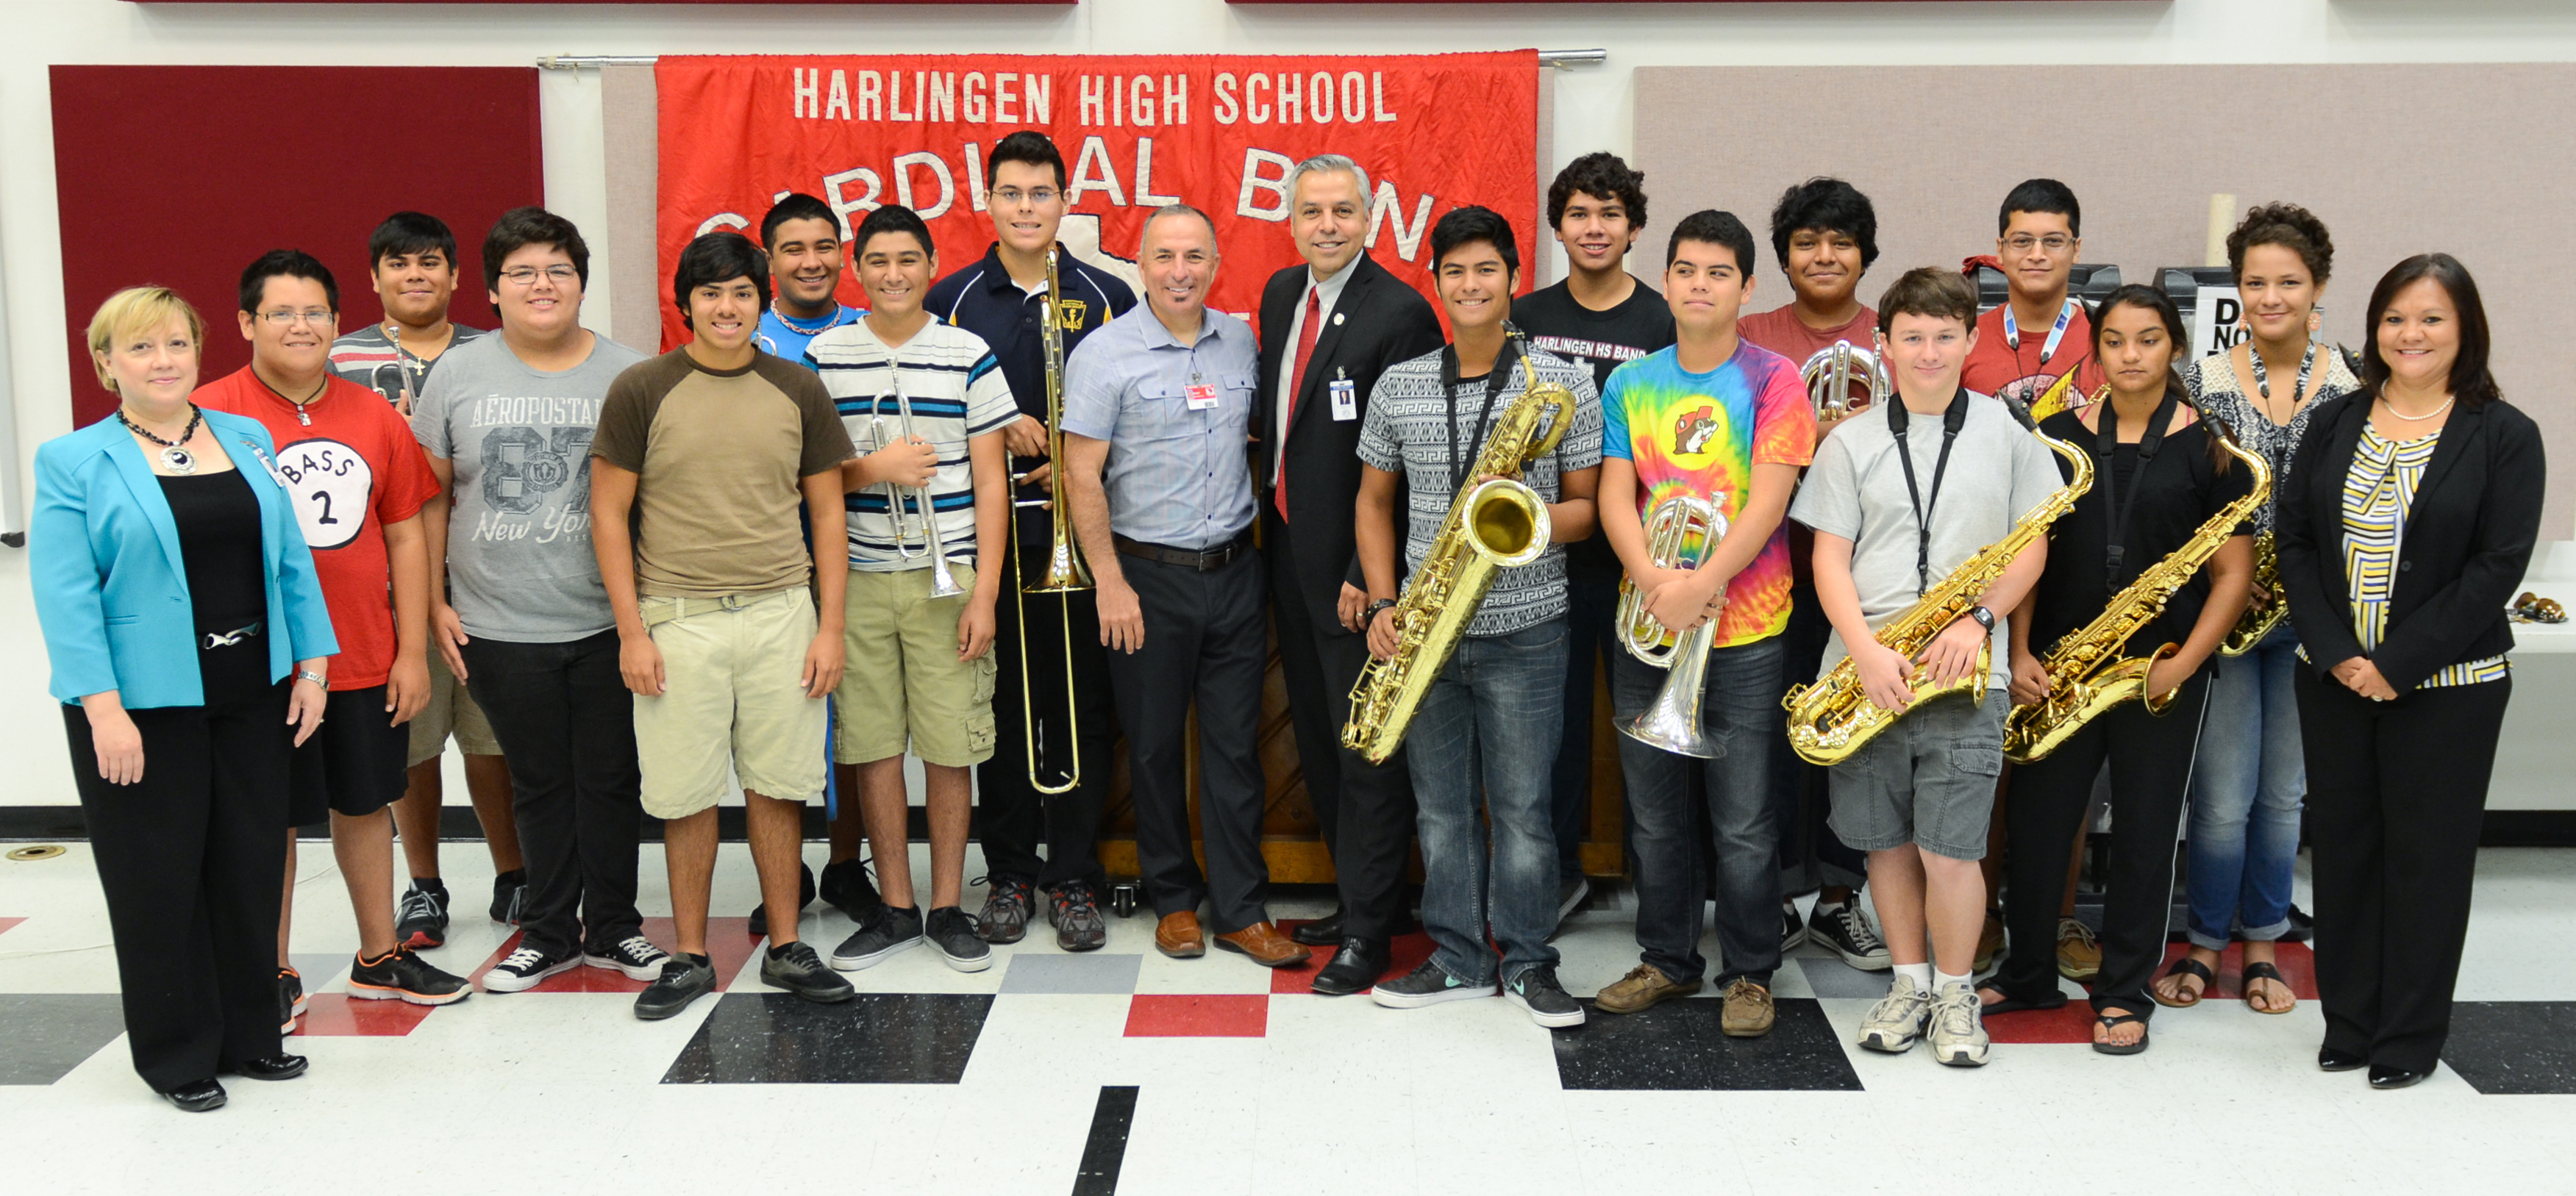 HHS Jazz Ensemble receives national recognition with the Mark of Excellence award